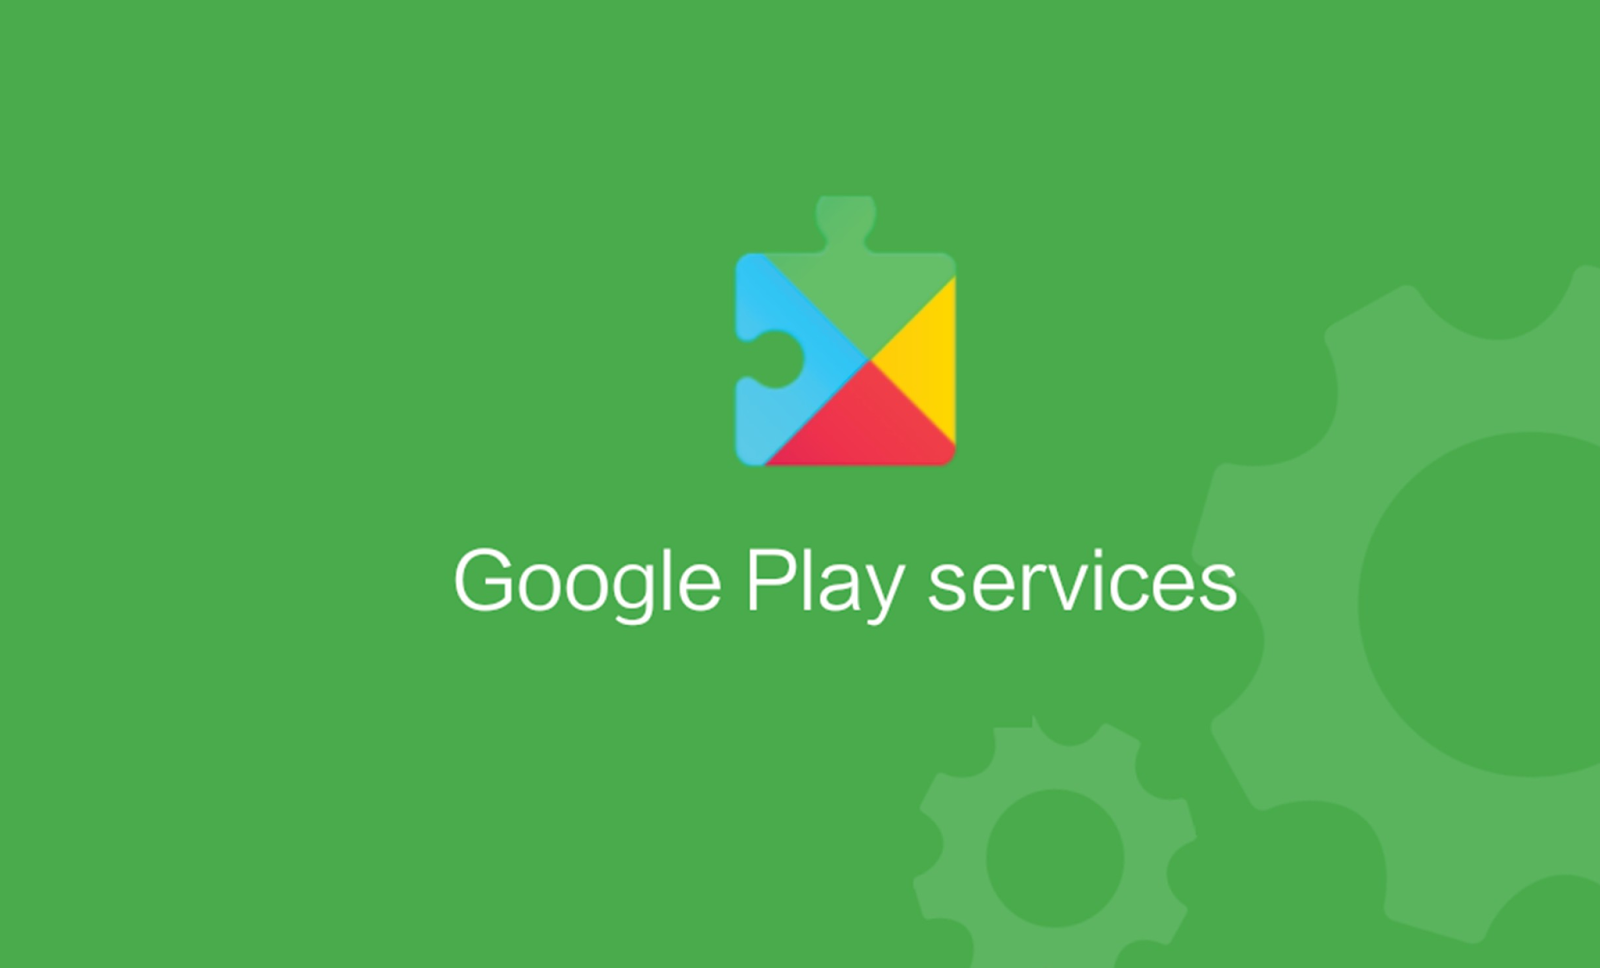 google play services apk latest version free